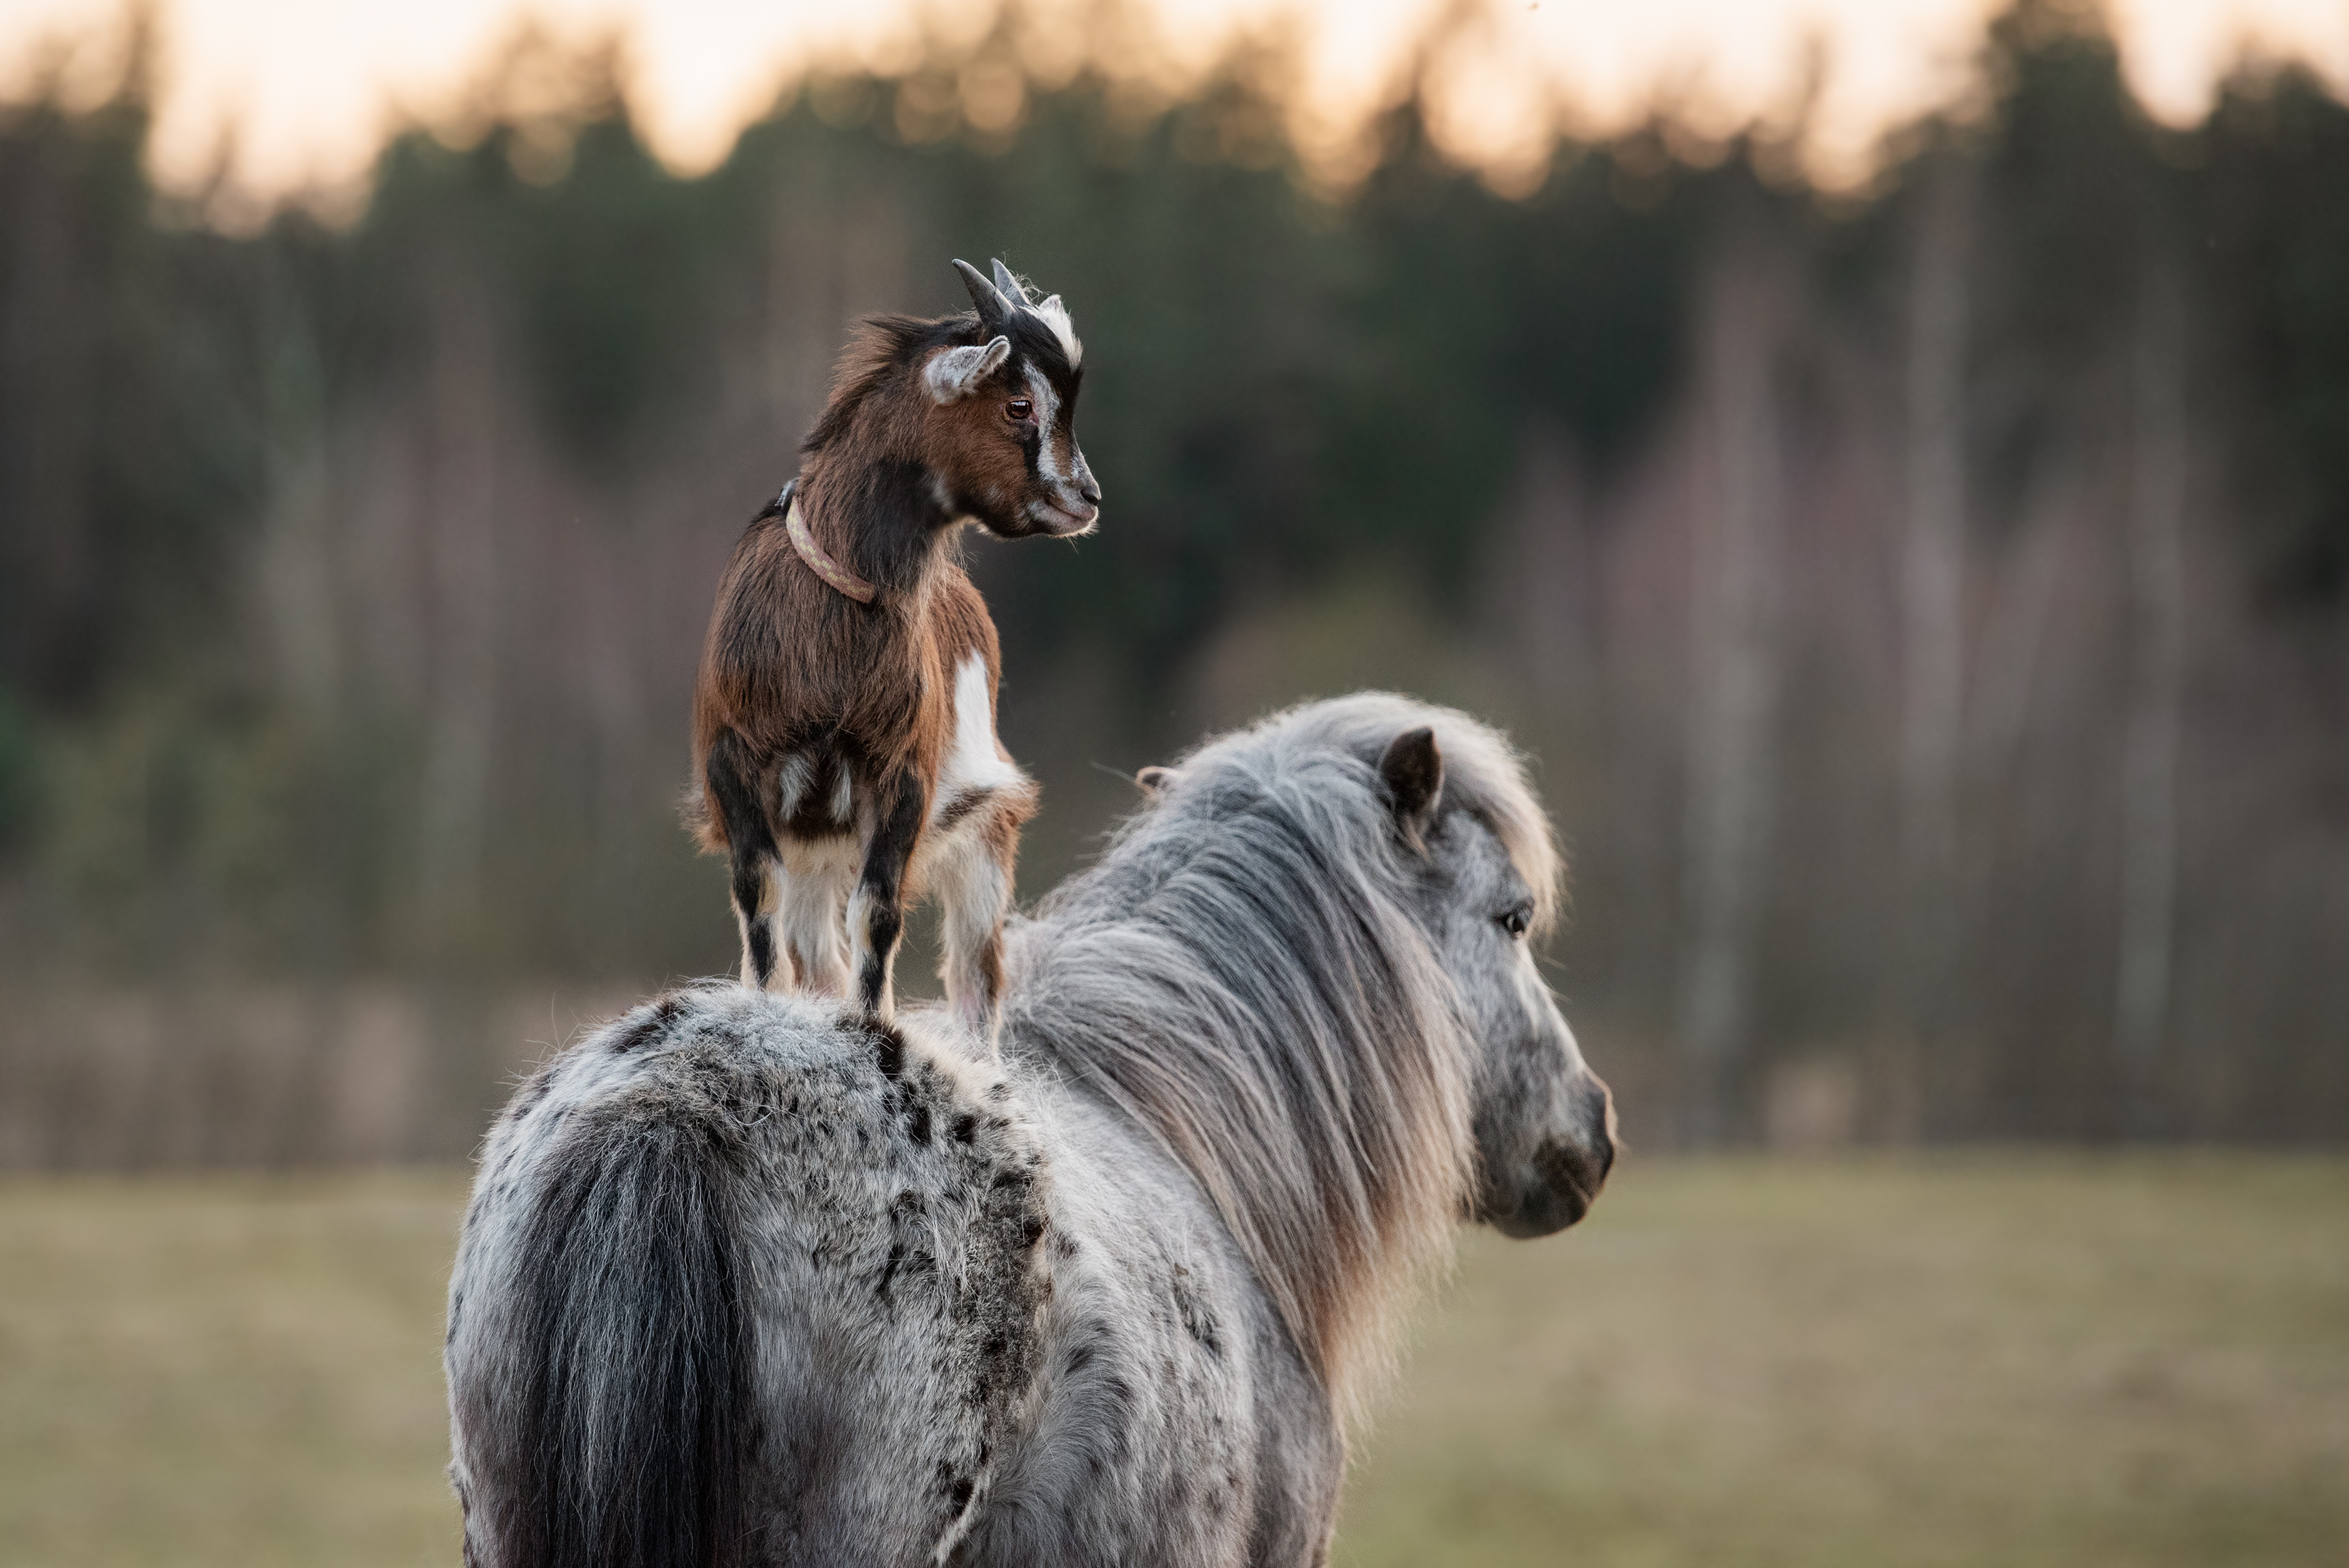 Little goat stands on the back of a pony